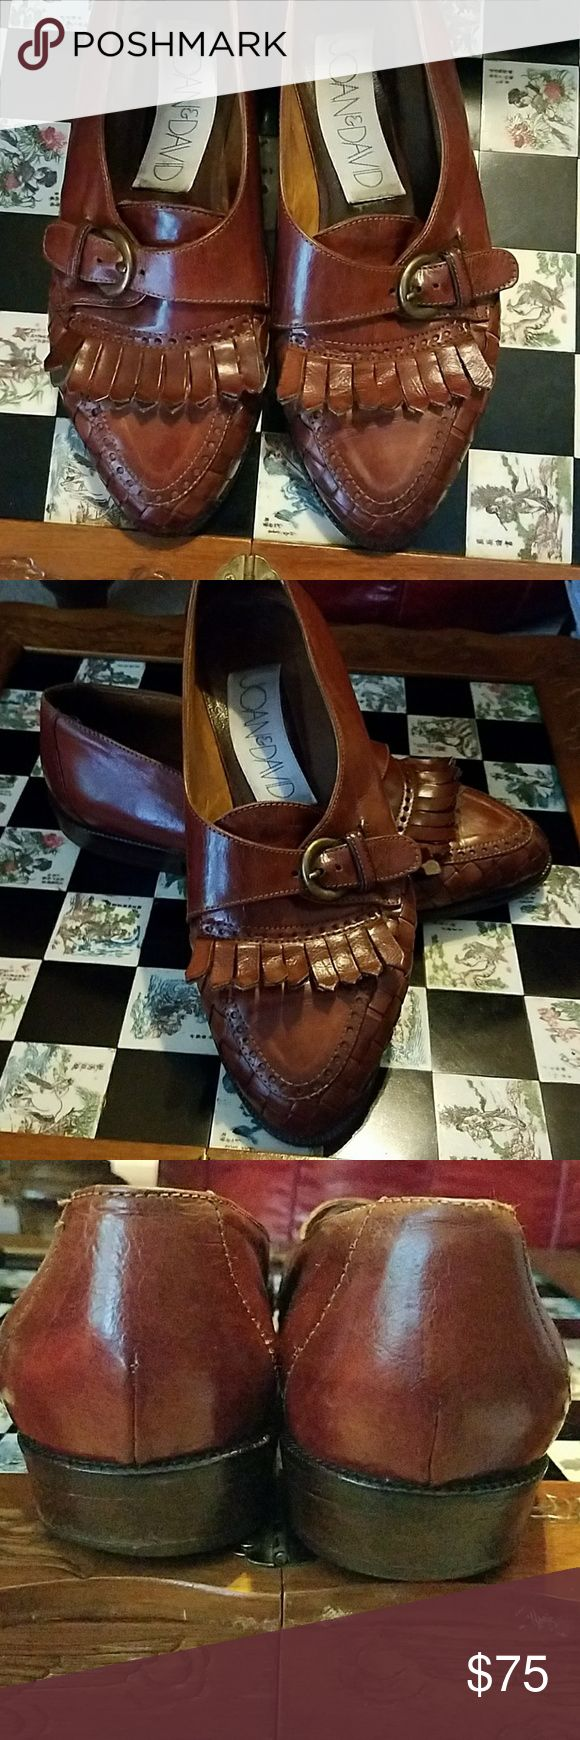 Joan and David Vintage Oxford size 8.5 Very gently loved with not so noticeable  scuff marks. There is wearing down of left heel. Detailed woven leather on the toe, with buckle on top. In awesome condition. I hate to part with them as they have been one of my favorite pairs, but they are too small! (AUTHENTIC)❣❣❣ Joan & David Shoes Flats & Loafers